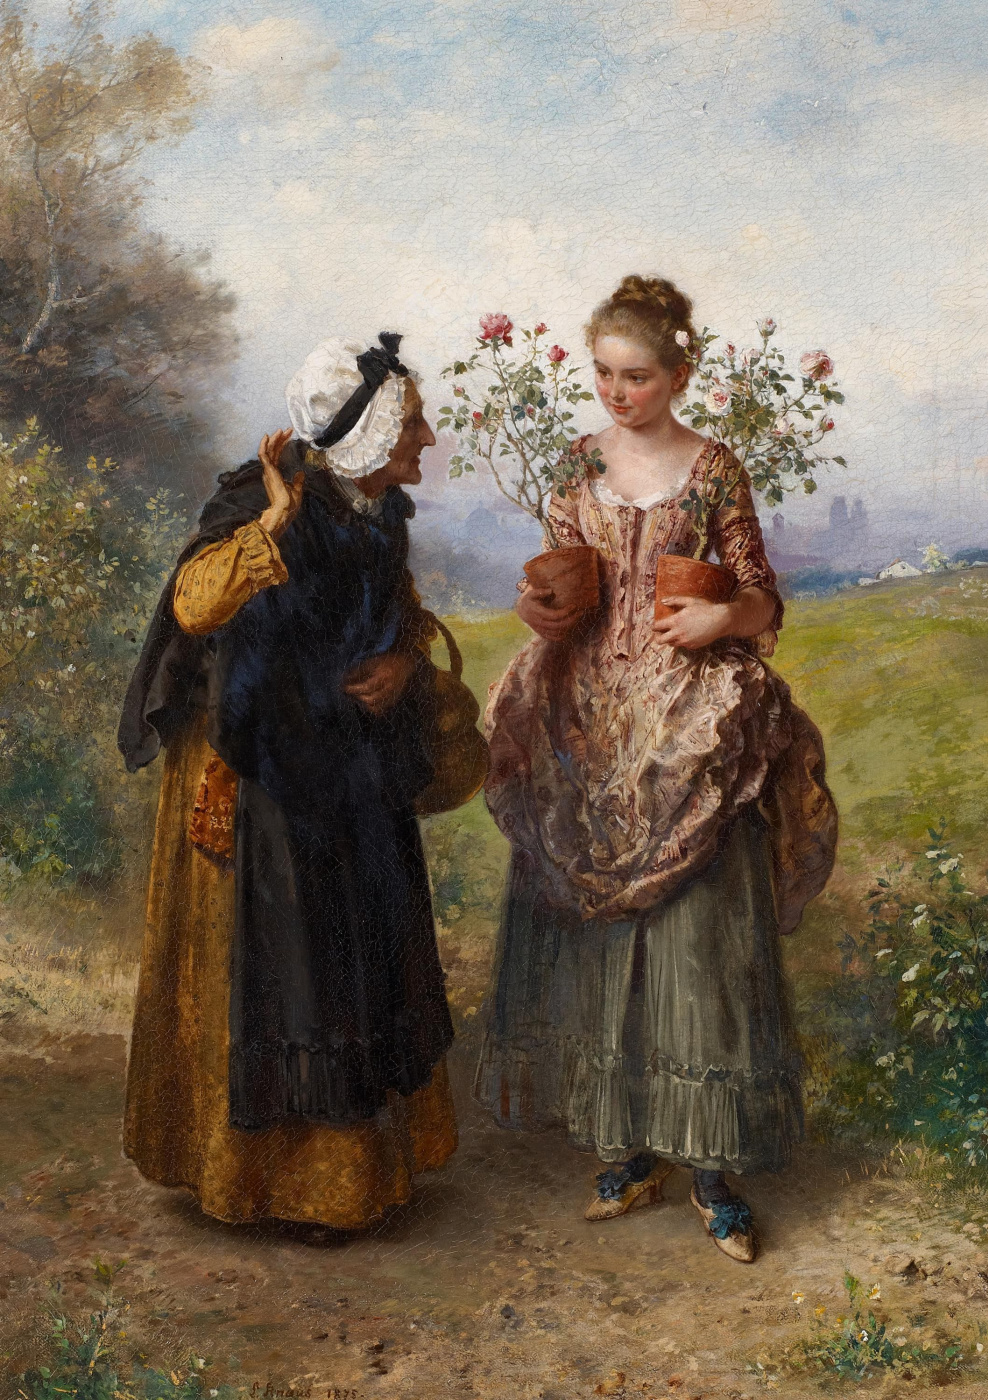 Ludwig Knaus. Thorns and roses